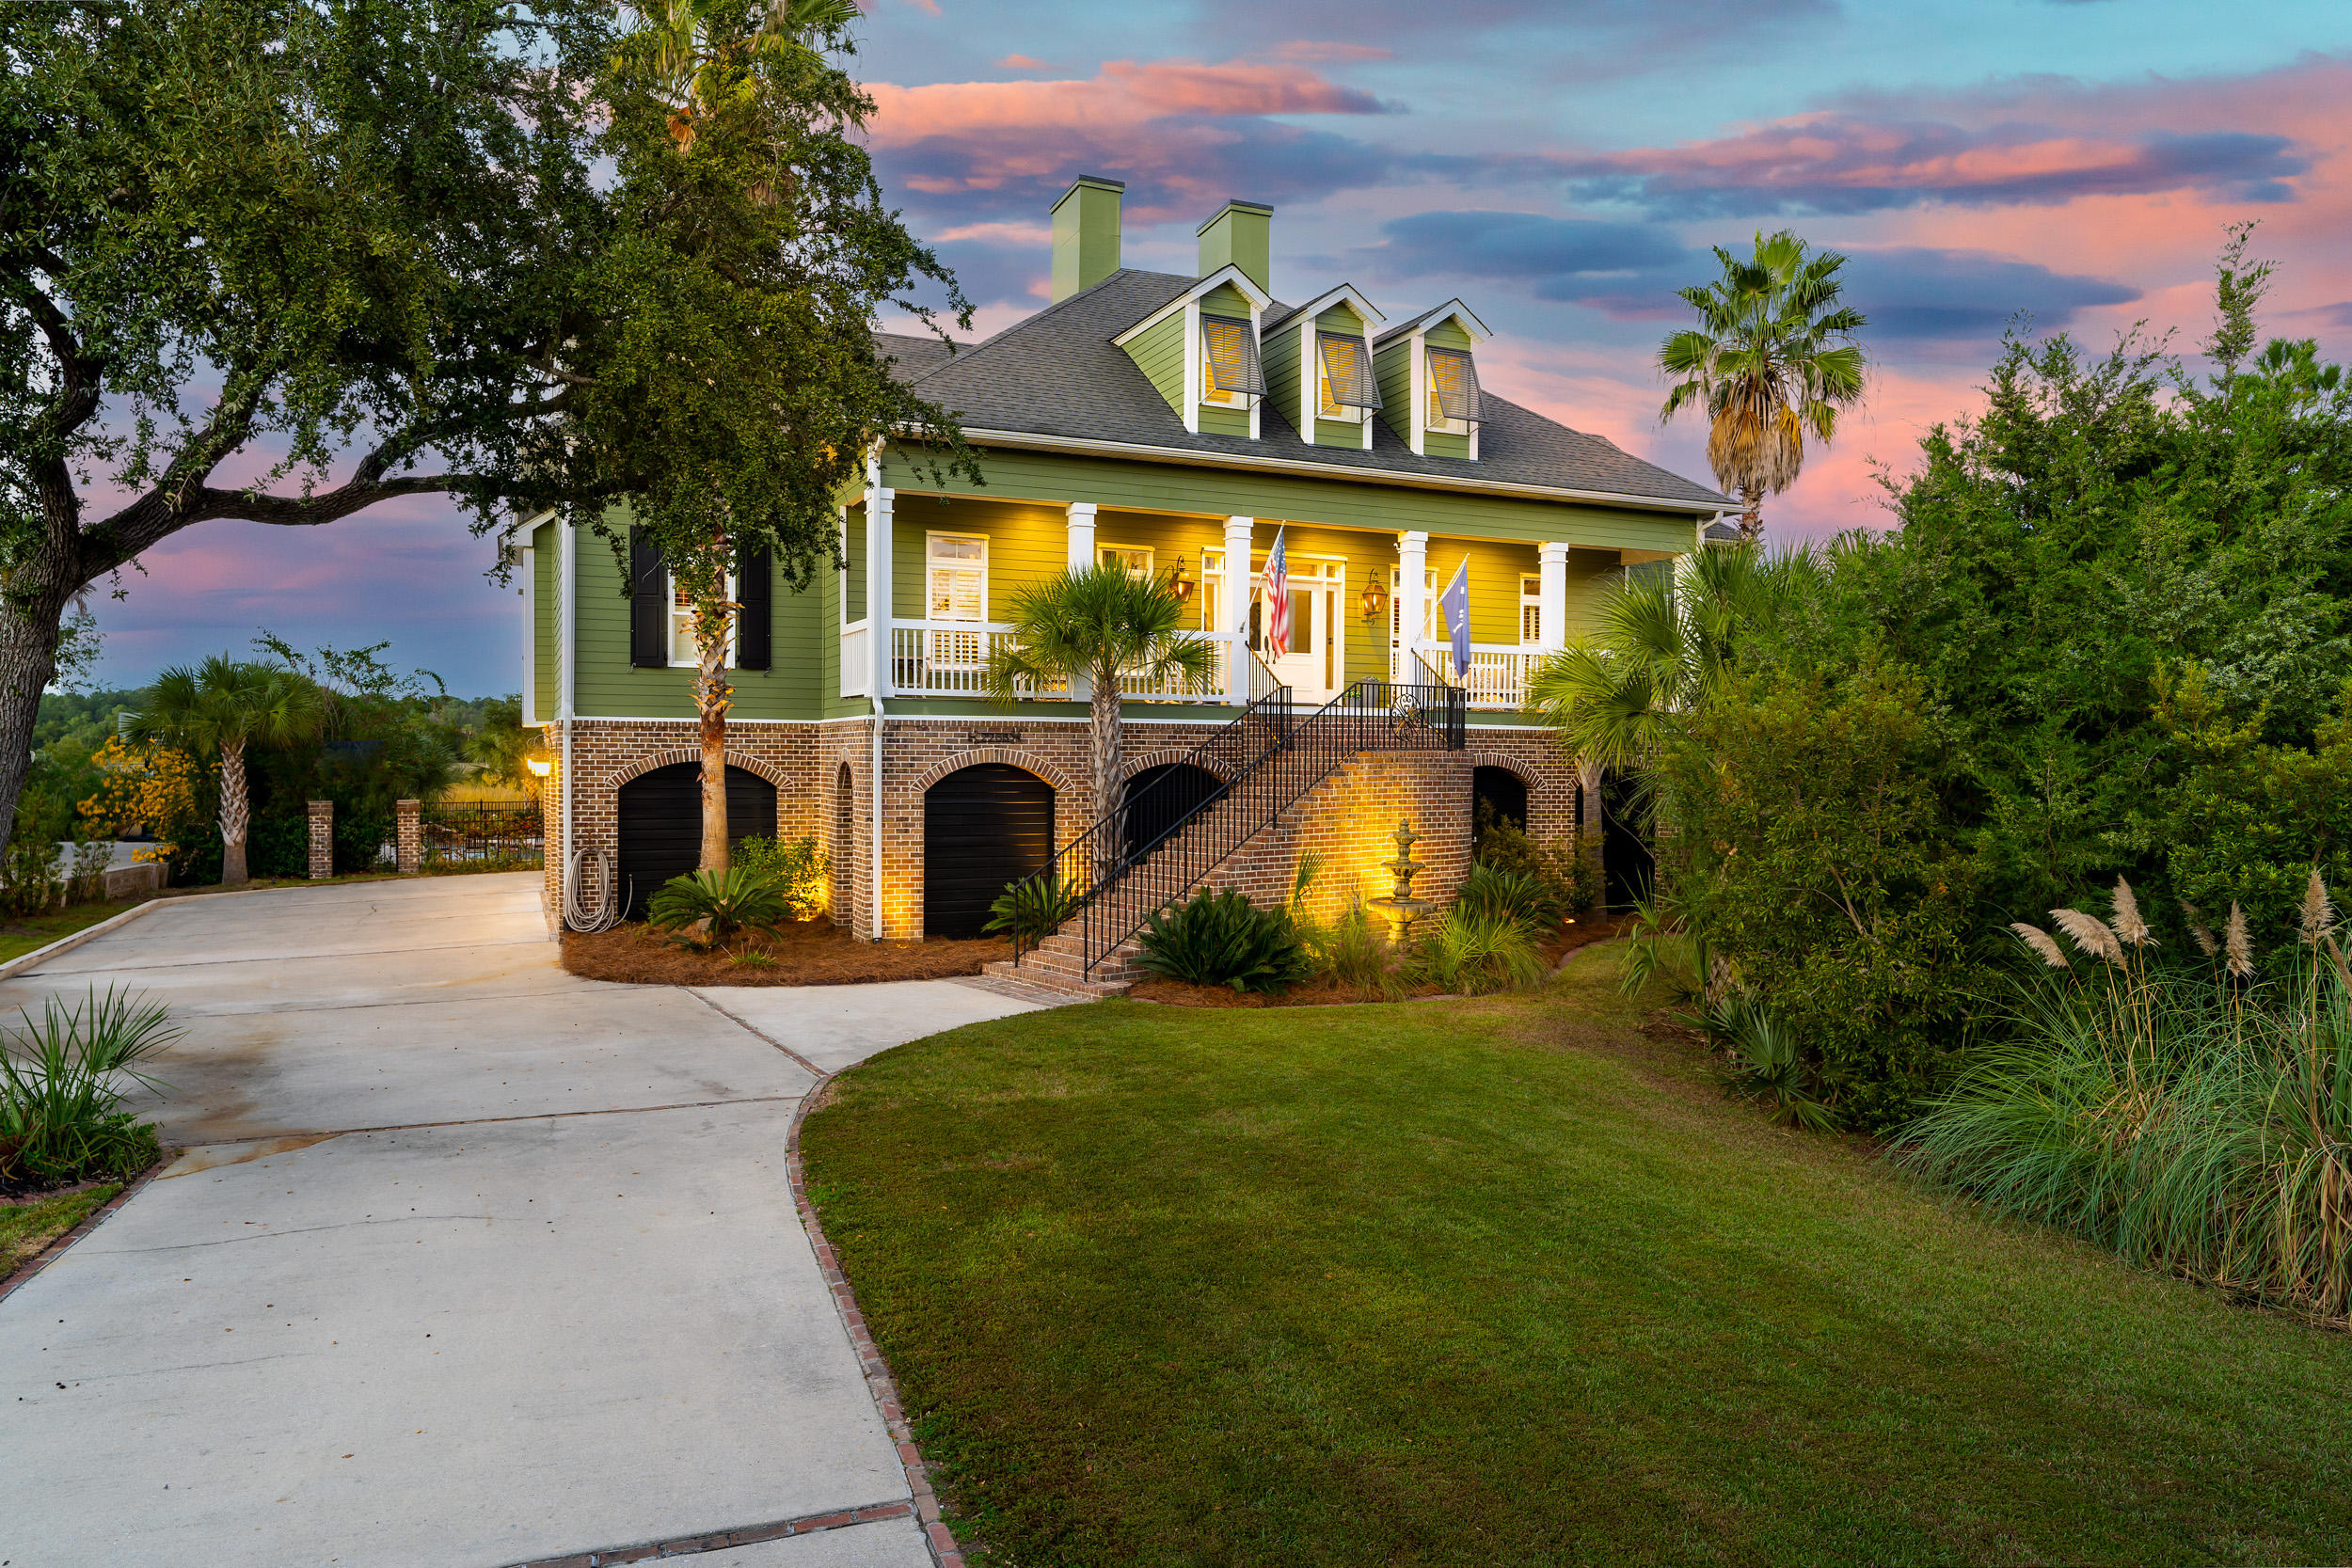 Rivertowne On The Wando Homes For Sale - 2268 Hartfords Bluff, Mount Pleasant, SC - 13